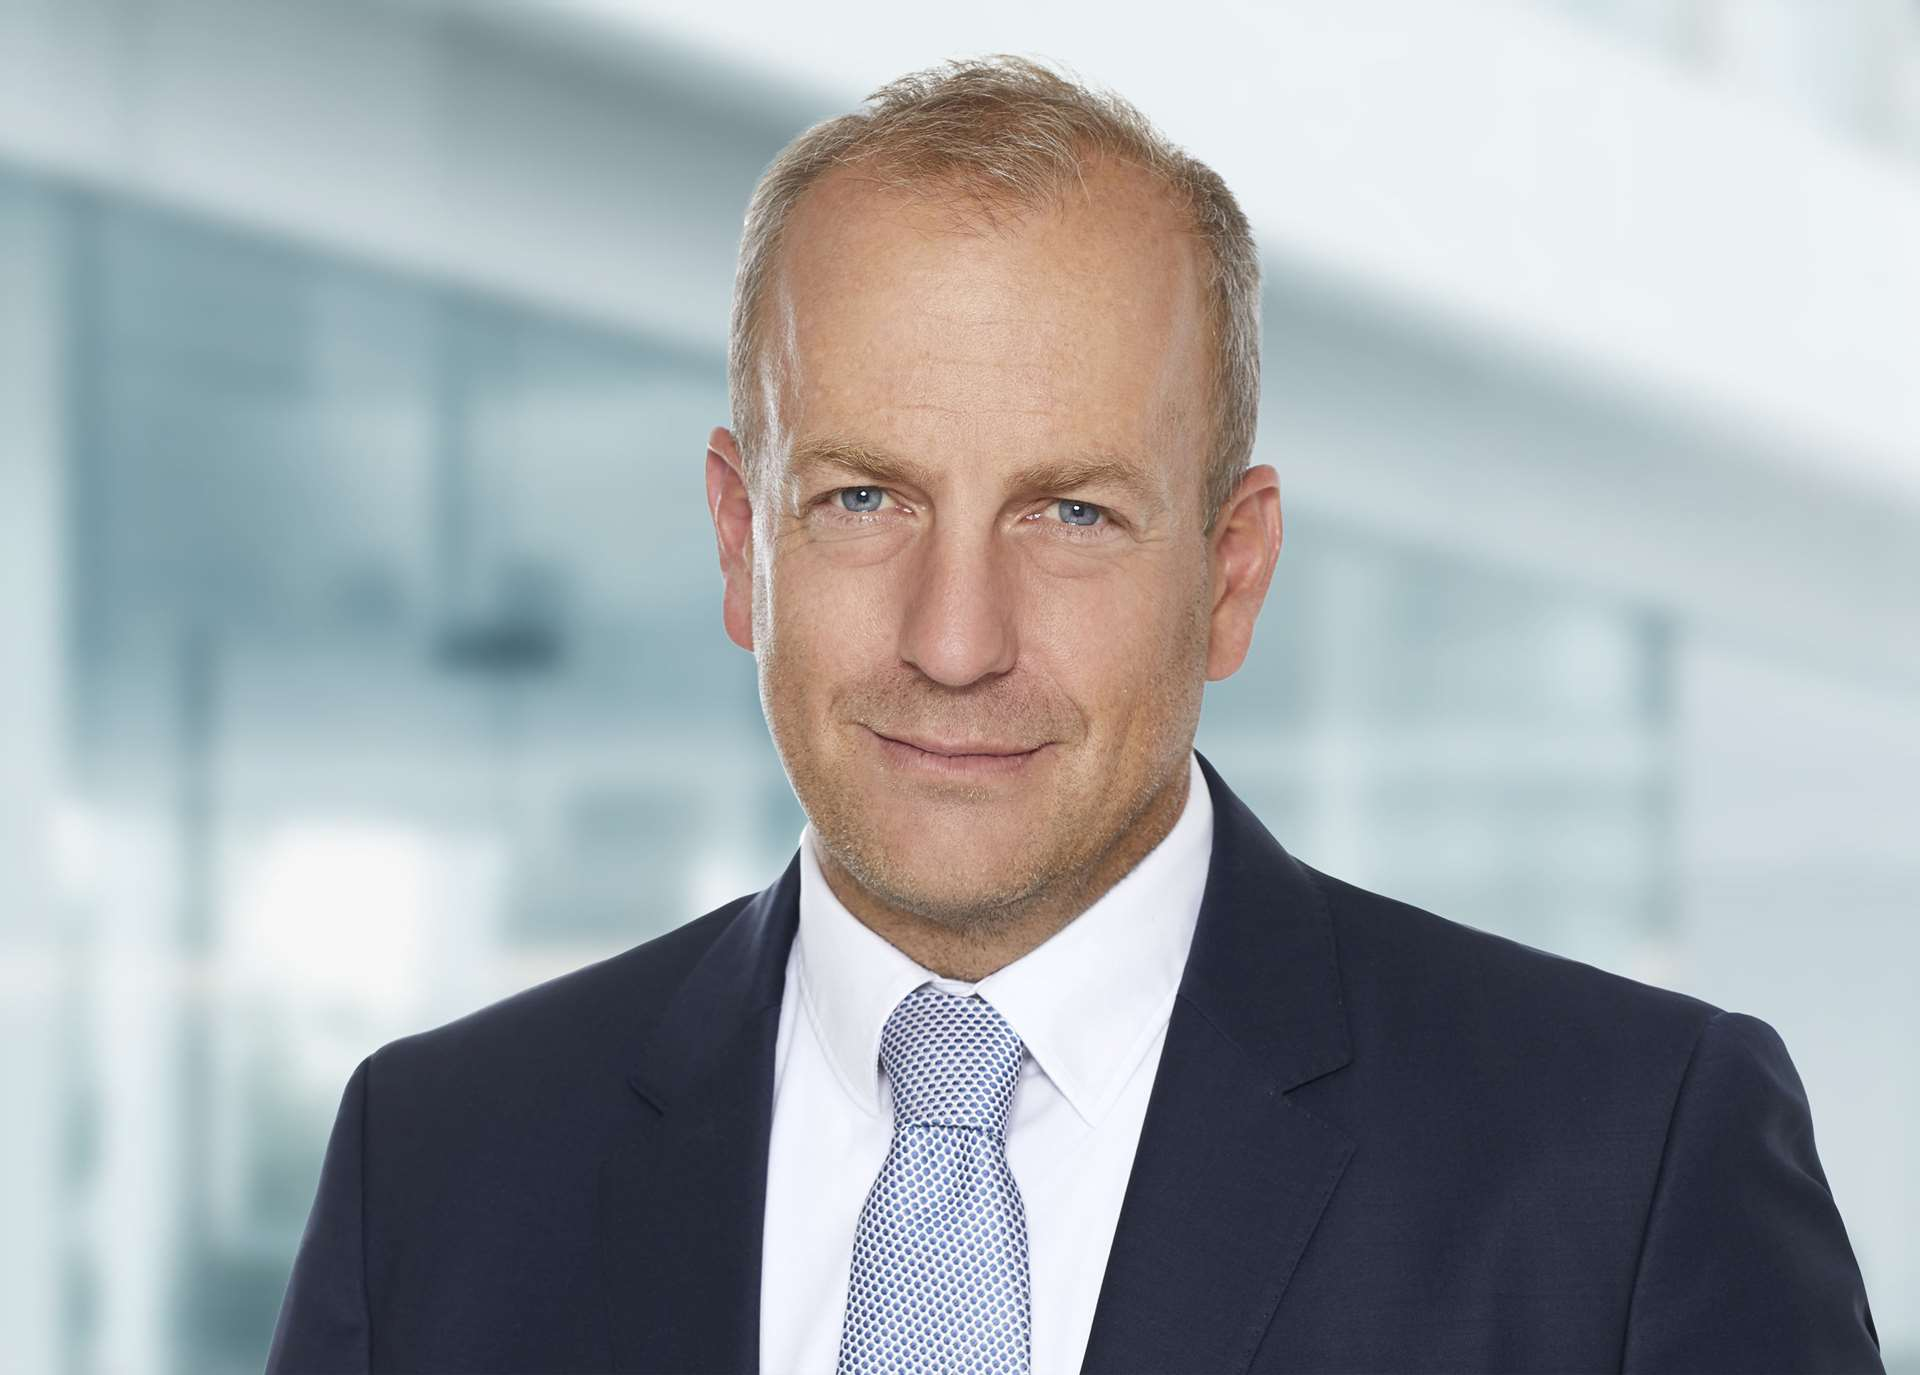 Kurt Lassacher, Partner